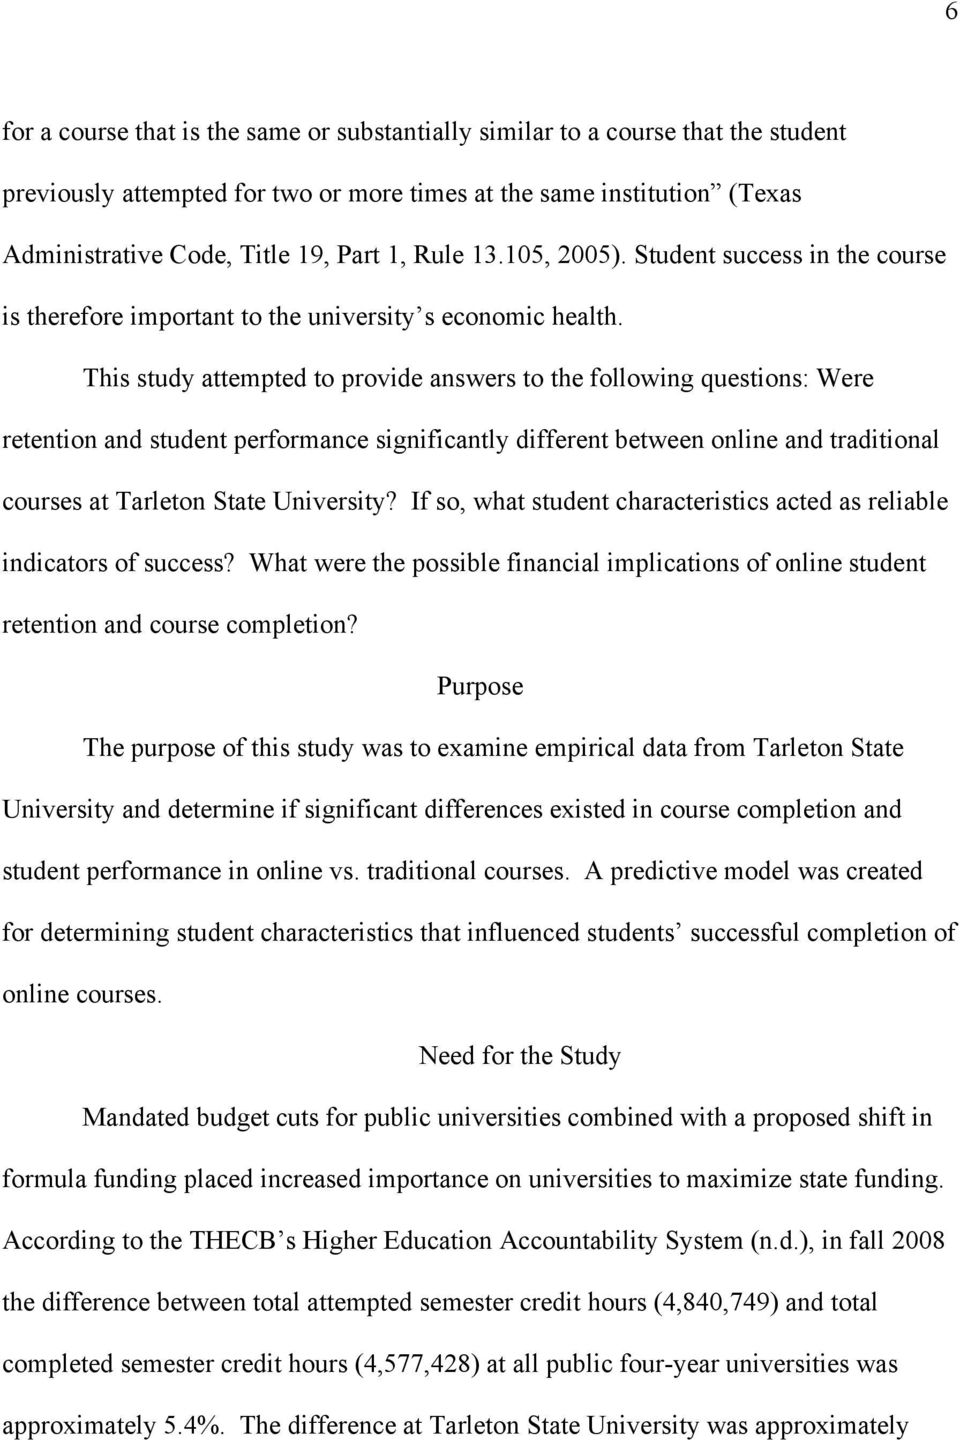 This study attempted to provide answers to the following questions: Were retention and student performance significantly different between online and traditional courses at Tarleton State University?